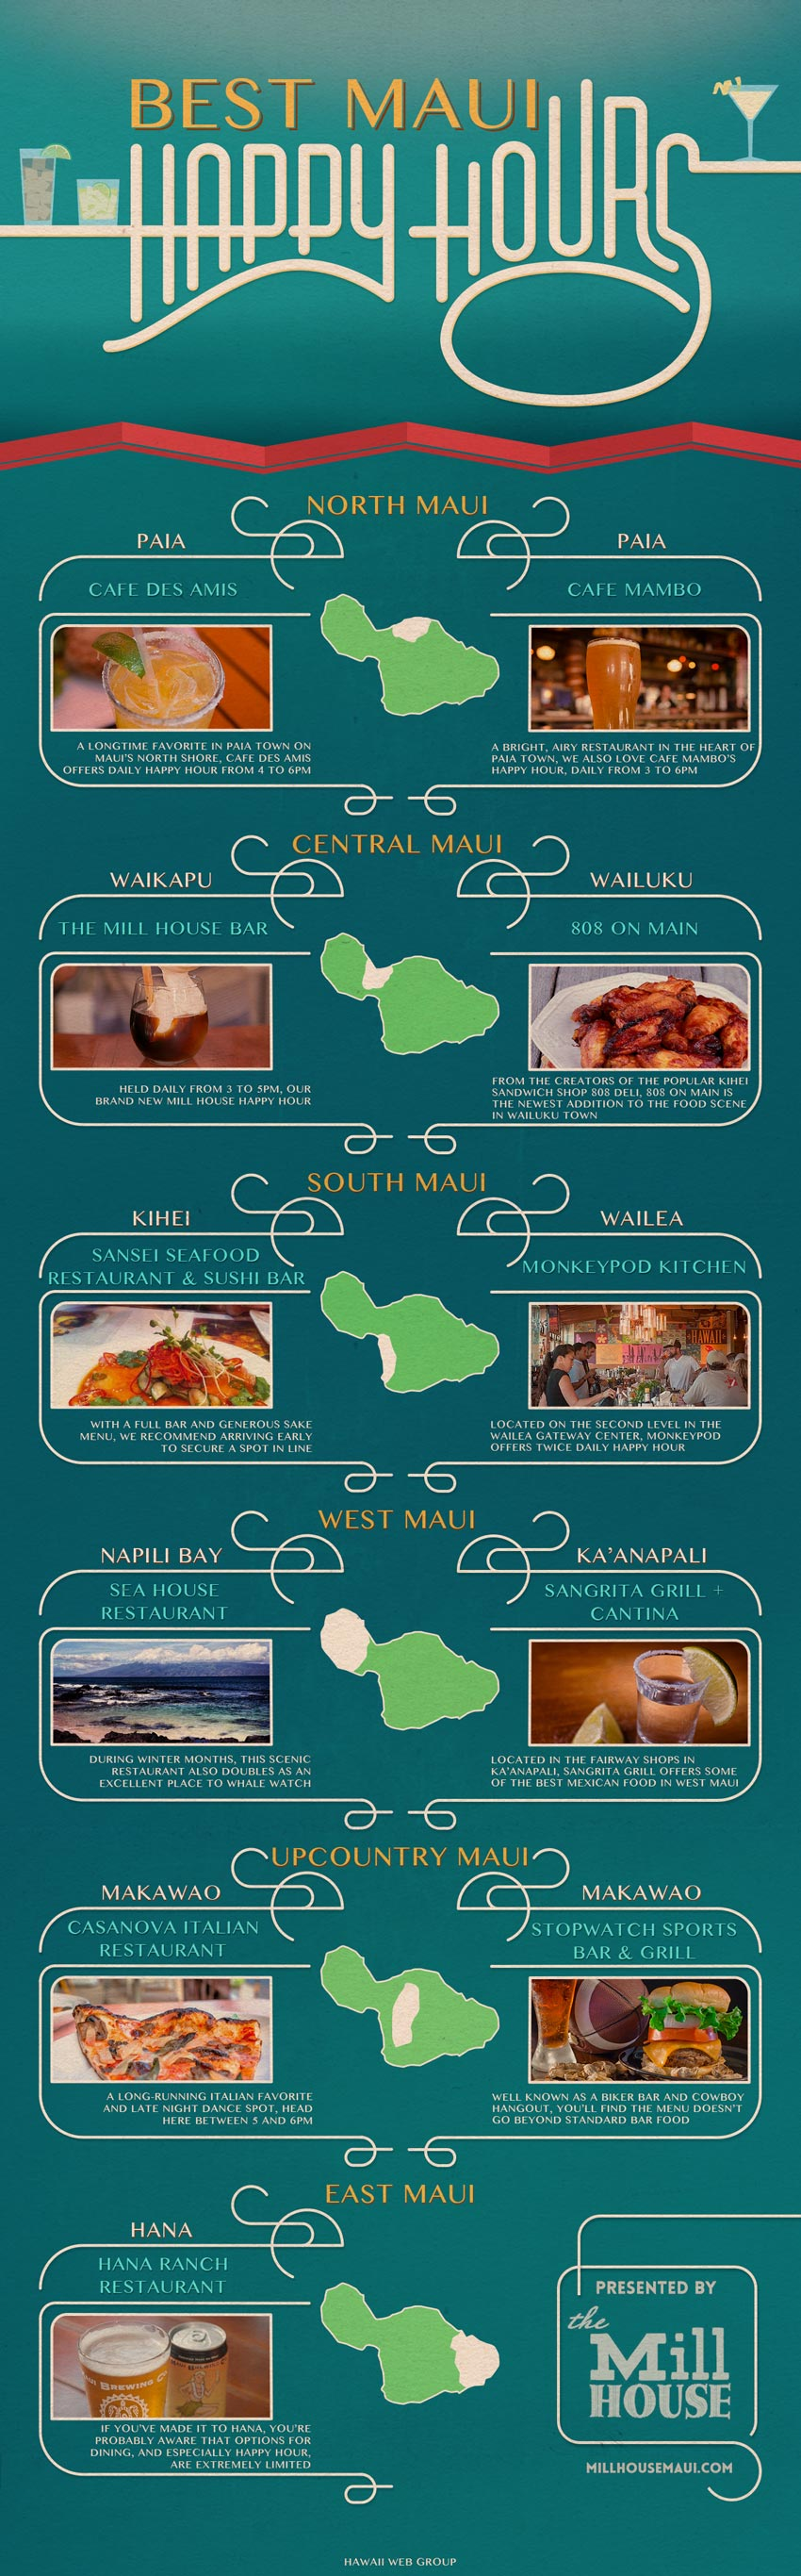 best maui happy hours infographic